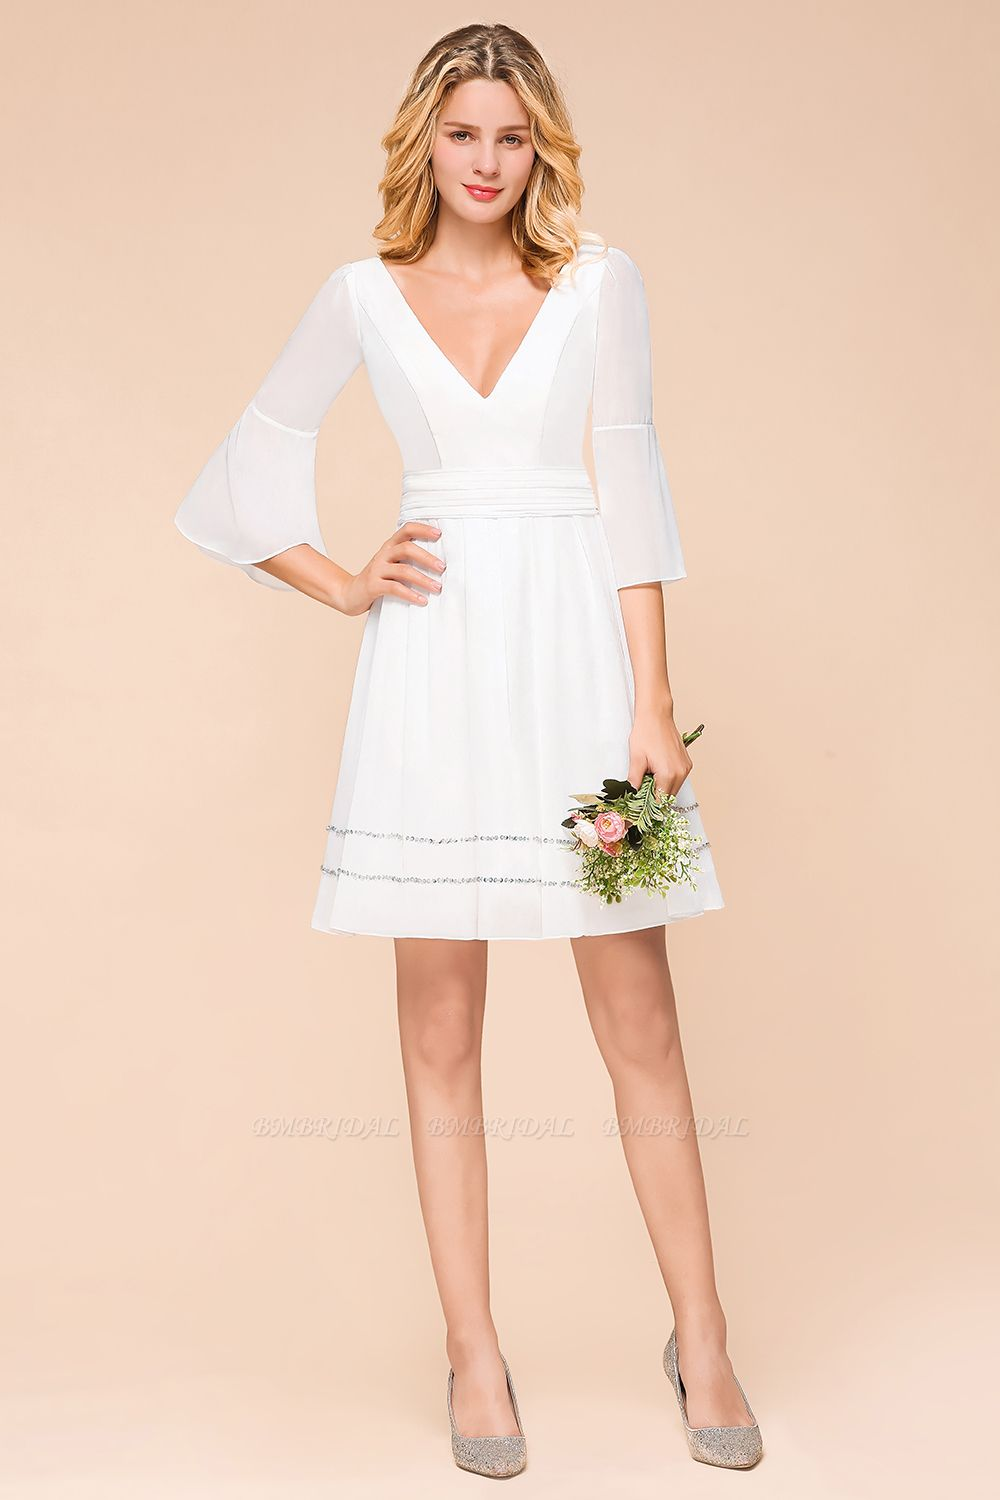 Chic V-Neck 3/4 Sleeves Short White Bridesmaid Dress with Sequins